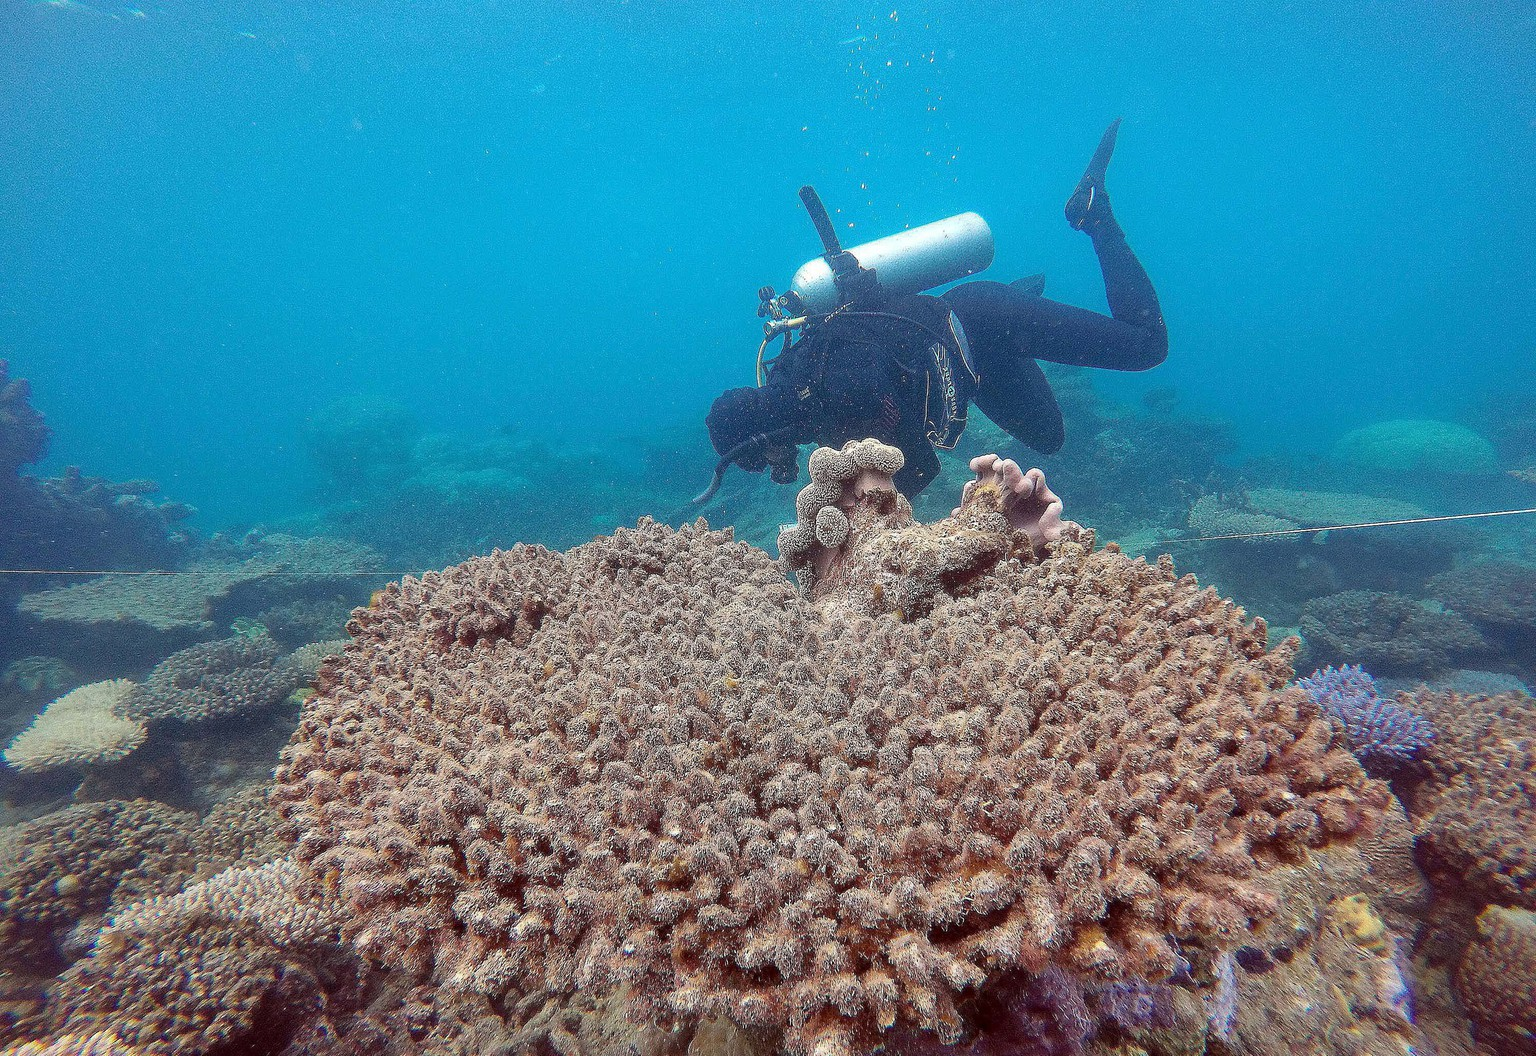 epa05651553 A handout picture taken in November 2016 and made available by the Australian Research Council (ARC) Centre of Excellence for Coral Reef Studies on 29 November 2016 shows scientists assessing coral mortality on Zenith Reef following the bleaching event, Northern Great Barrier Reef, Queensland, Australia. A new study has found higher water temperatures have ravaged the Great Barrier Reef, causing the worst coral bleaching ever recorded by scientists. In the worst affected area 67 percent of a 700km swath in the north of the reef lost its shallow-water corals over the past eight to nine months, the ARC Centre of Excellence for Coral Reef Studies based at James Cook University study found.  EPA/ANDREAS DIETZEL/ARC CENTRE OF EXCELLENCE FOR CORAL REEF STUDIES AUSTRALIA AND NEW ZEALAND OUT HANDOUT EDITORIAL USE ONLY/NO SALES